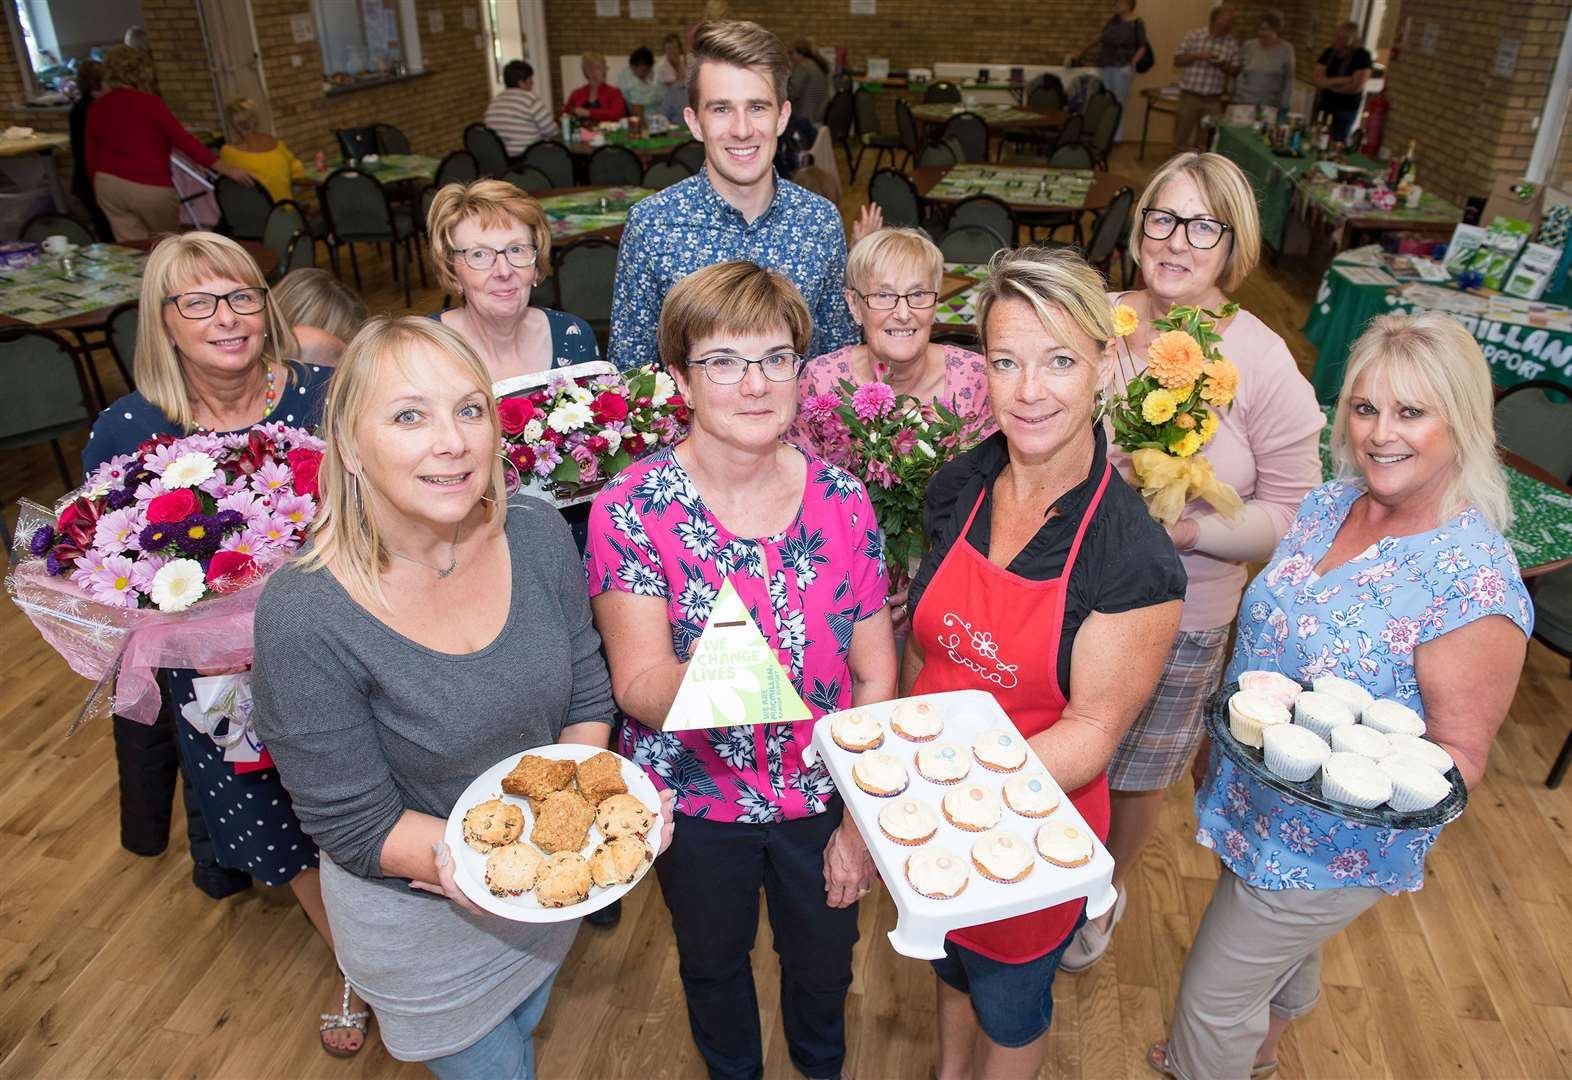 Kettles at the ready for Macmillan's World's Biggest Coffee Morning